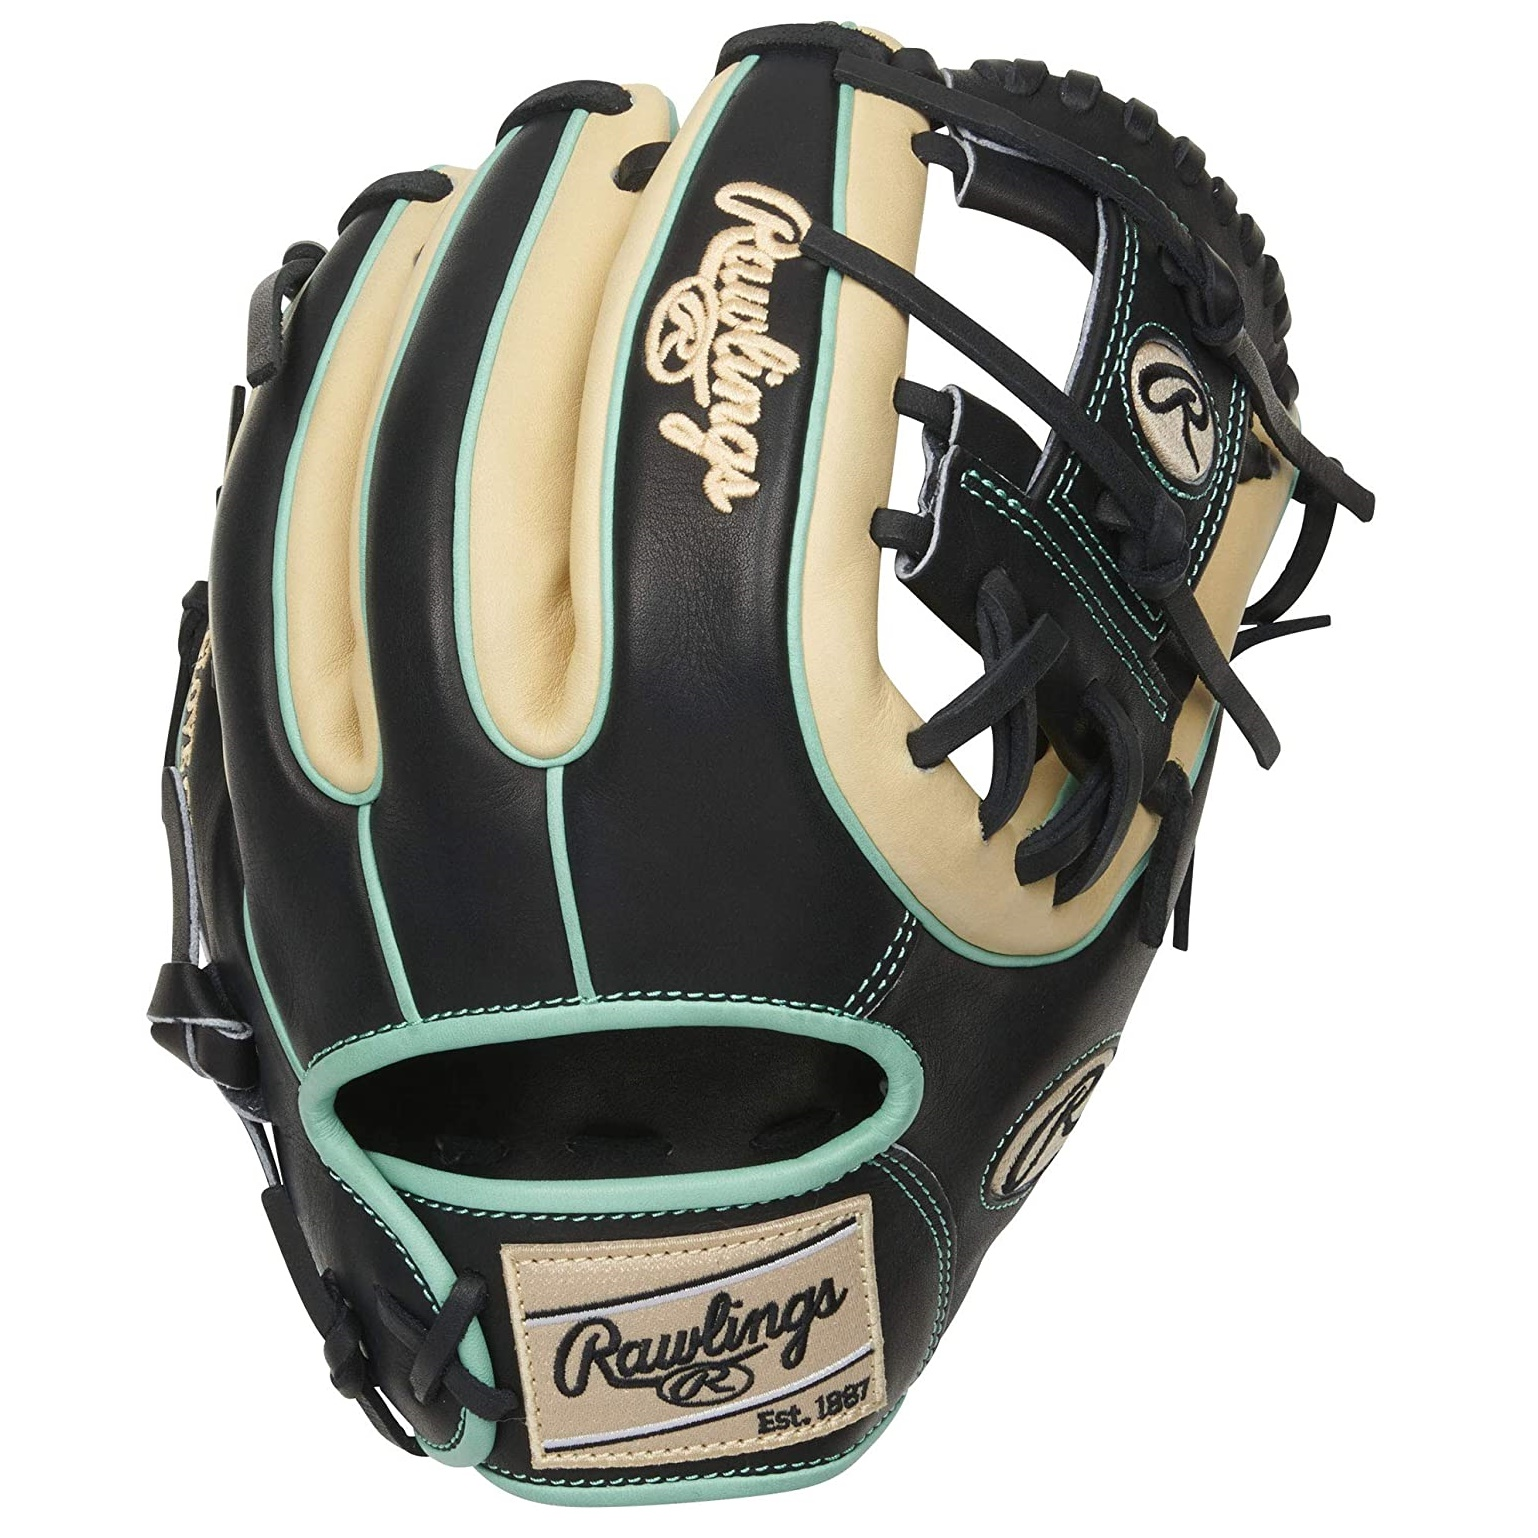 rawlings-heart-of-the-hide-black-camel-mint-r2g-baseball-glove-pro-i-web-11-5-inch-right-hand-throw PROR314-2CBM-RightHandThrow   Take your game to the next level with the 2021 Heart